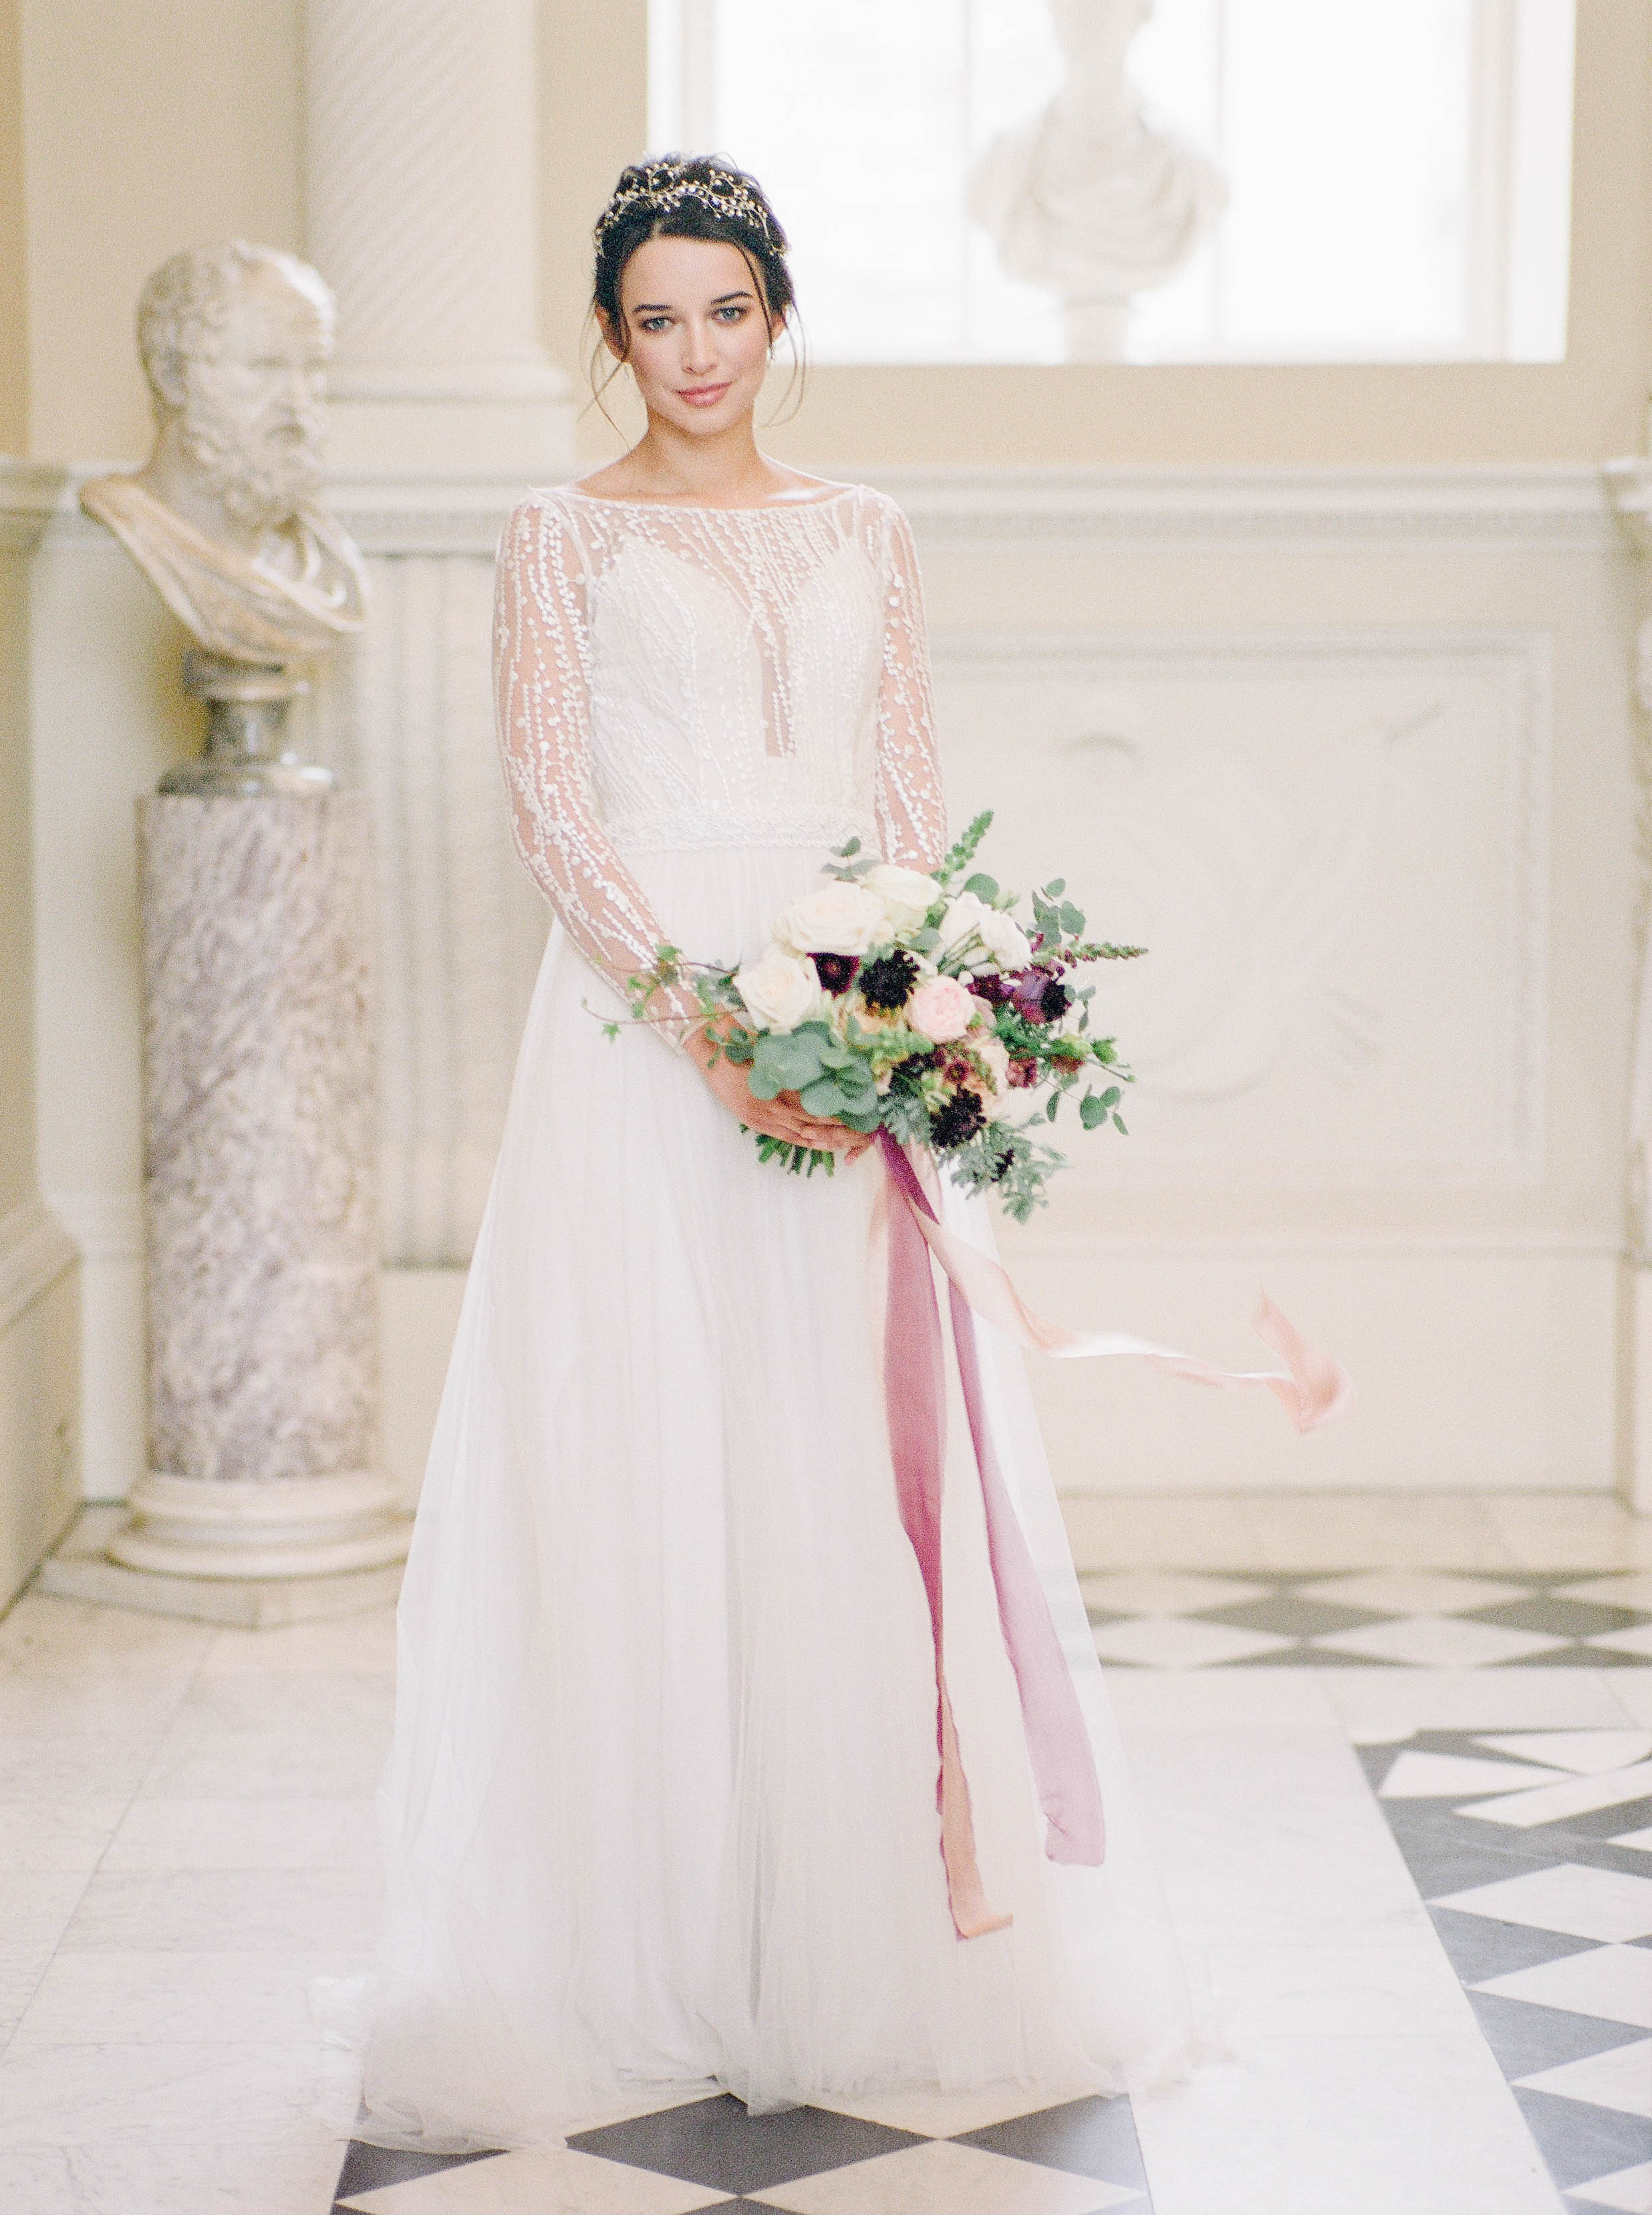 bride-holding-flowers-with-Italian-theme